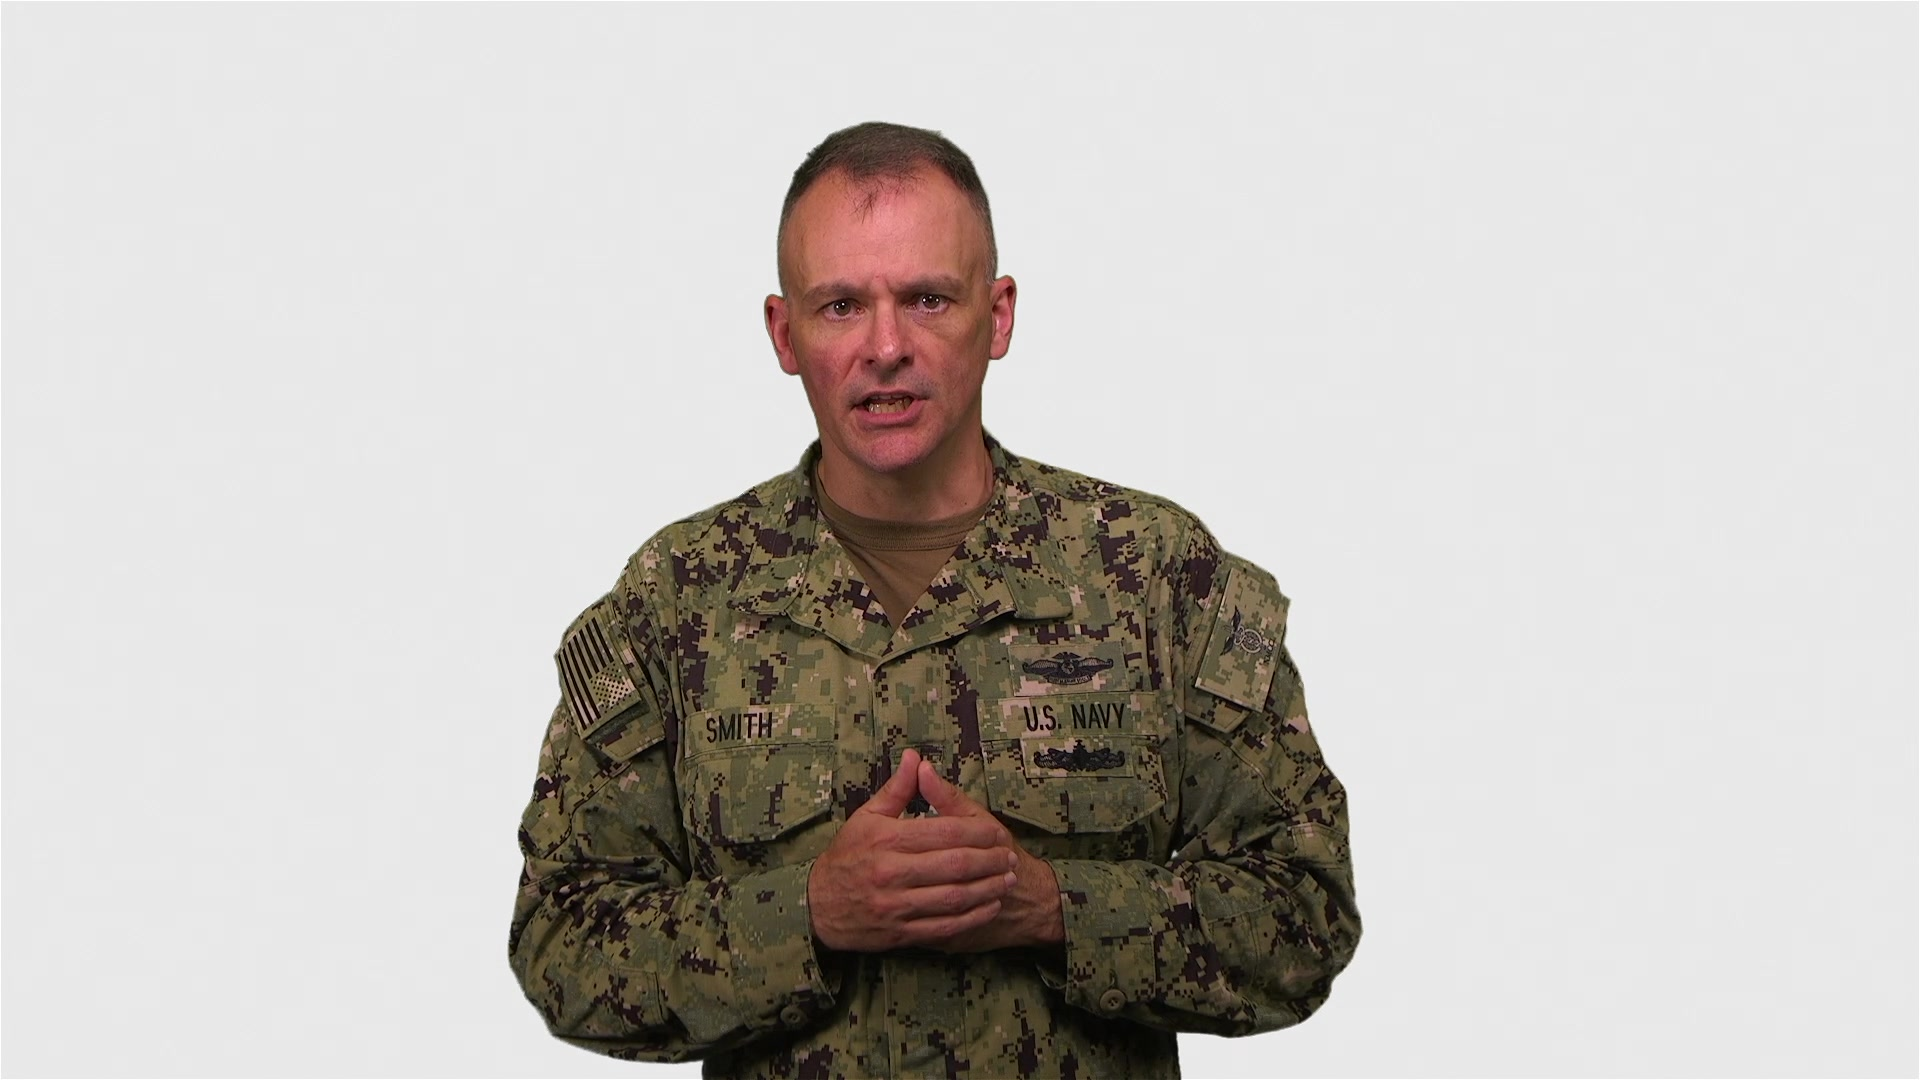 U.S. Navy Commander Wayne R. Smith, Public Health Emergency Officer for Marine Corps Installations East and Director of Medical Services for Naval Medical Center Camp Lejeune, shares information on the importance of staying alert and remaining proactive to prevent COVID-19, May 12, 2020. Cmdr. Smith discusses the gradual resumption of non-critical services, a phased approach to reopening services at Naval Medical Center Camp Lejeune, and reminds everyone it is important to continue exercising health safety measures. For more information, visit the Centers for Disease Control and Prevention website at http://www.cdc.gov/coronavirus. (U.S. Marine Corps video by Cpl. Alexia Lythos)